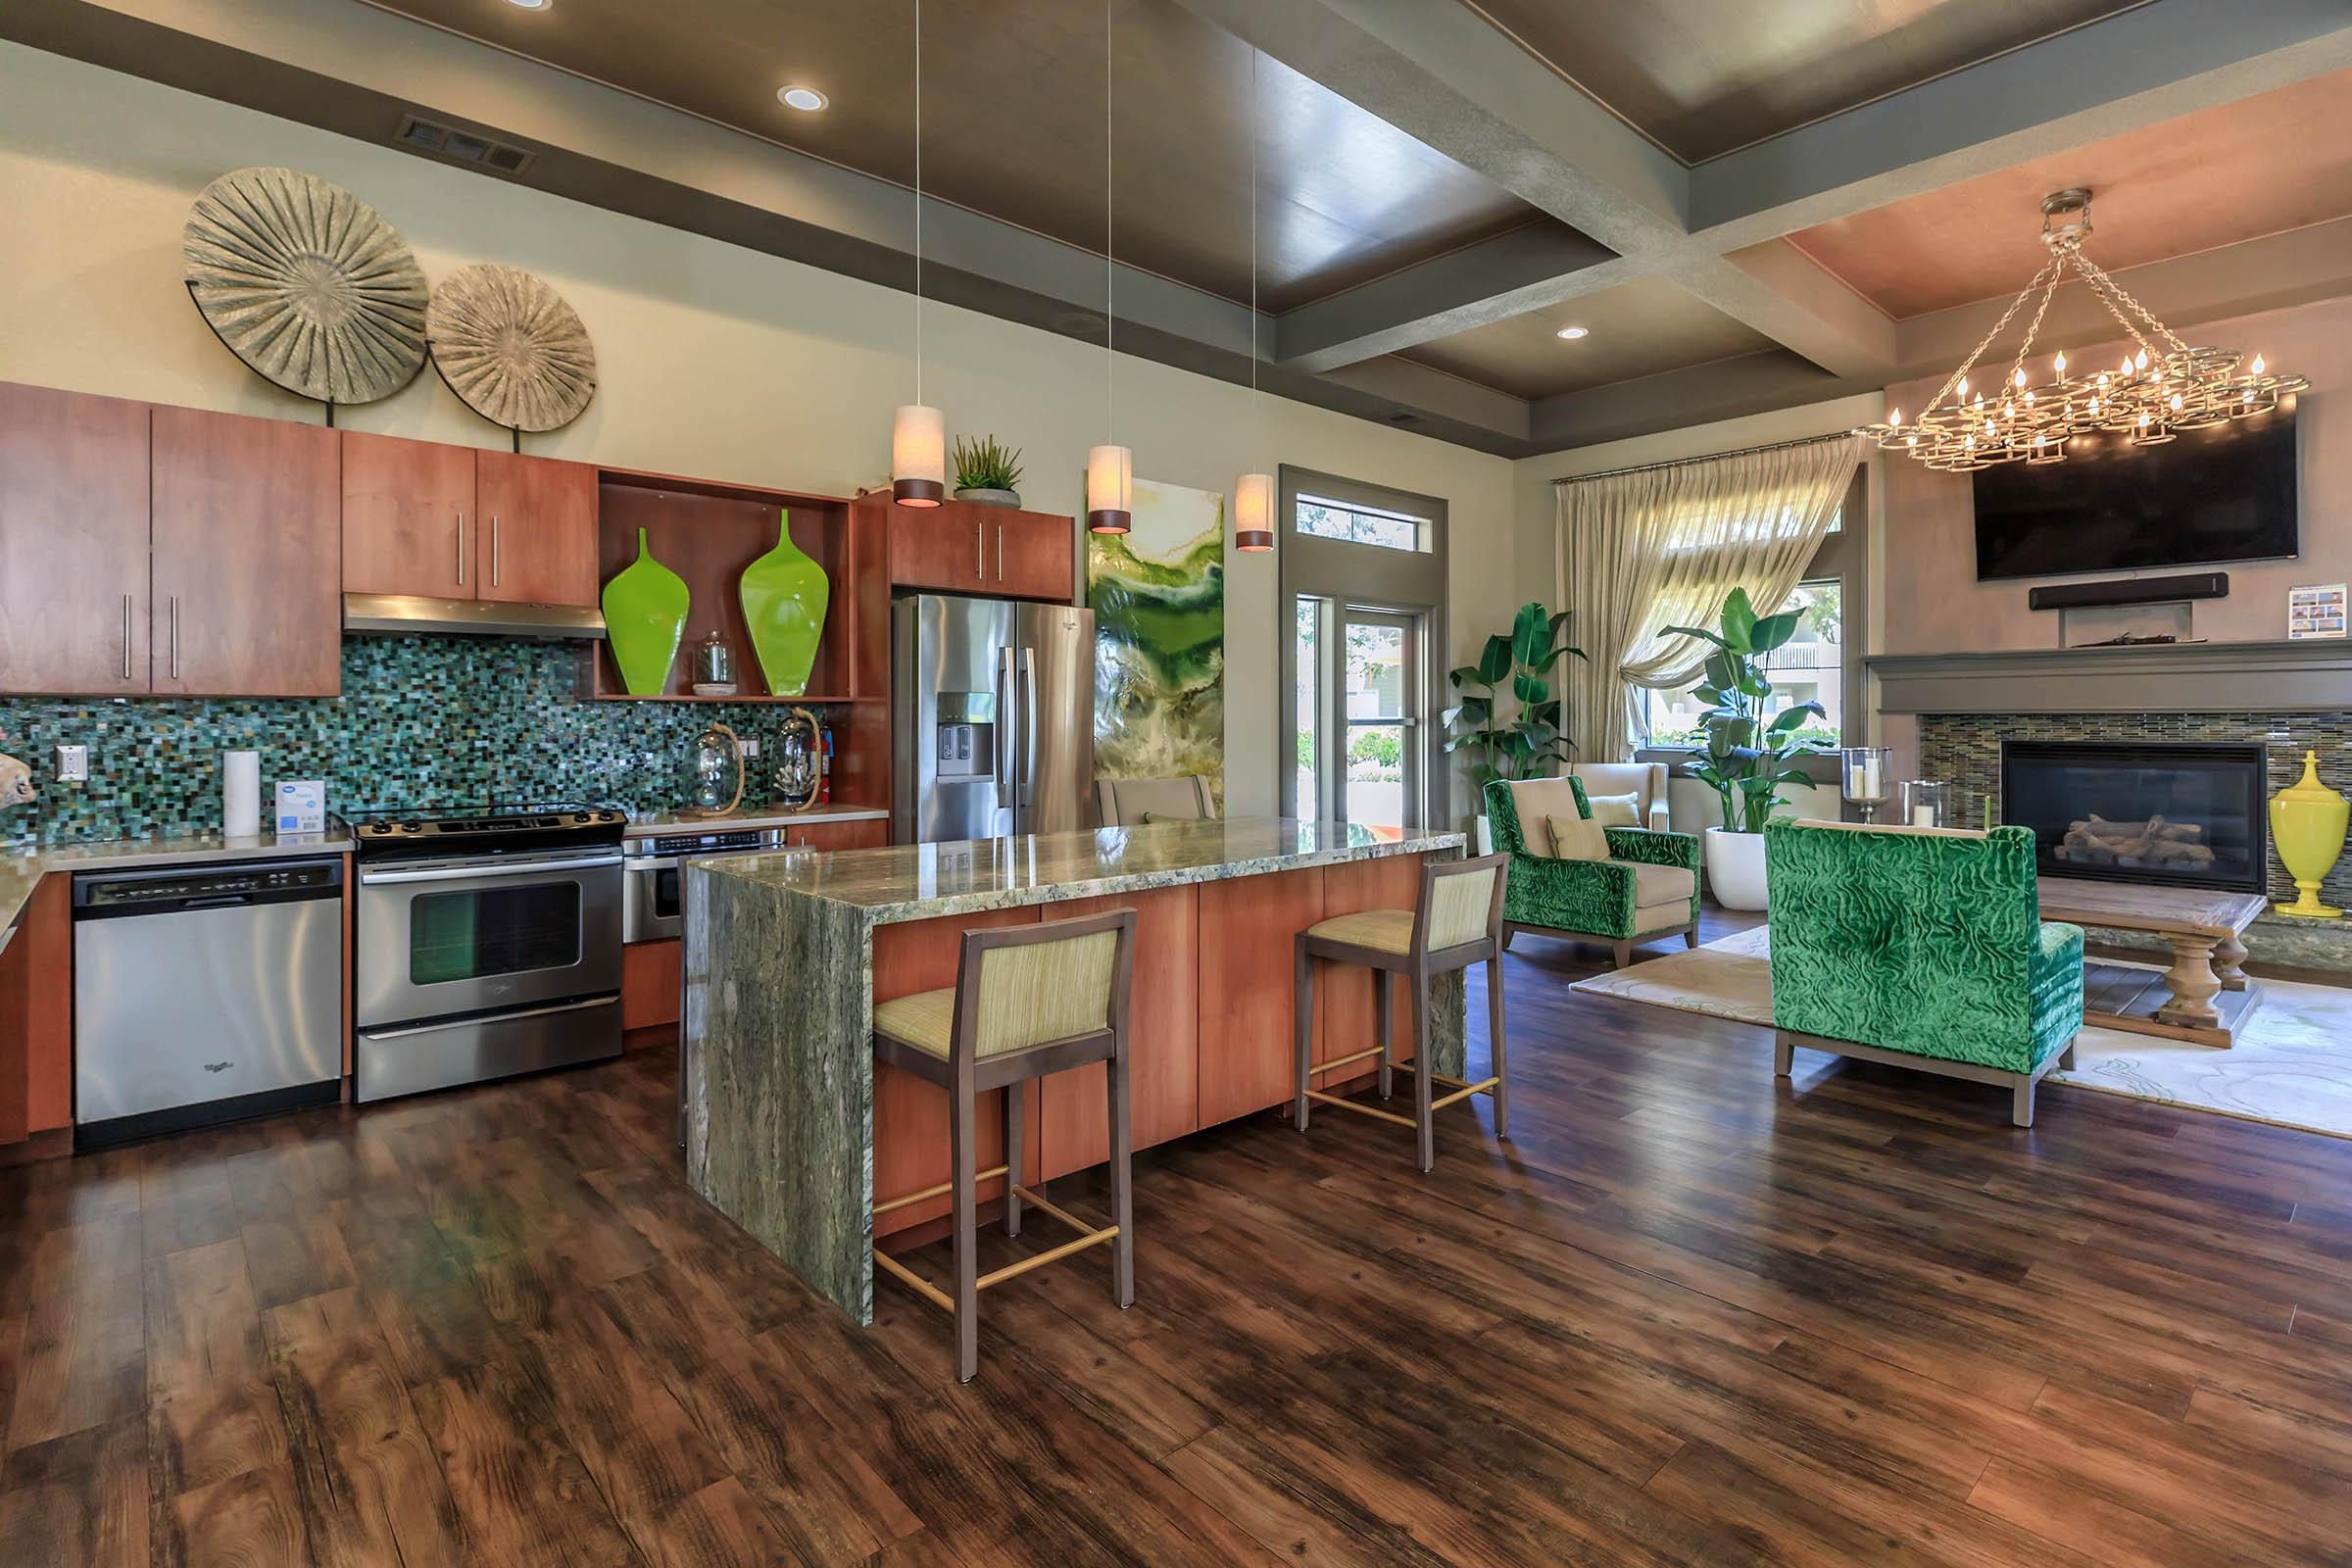 Cambridge Village Apartments community kitchen with stainless steel appliances